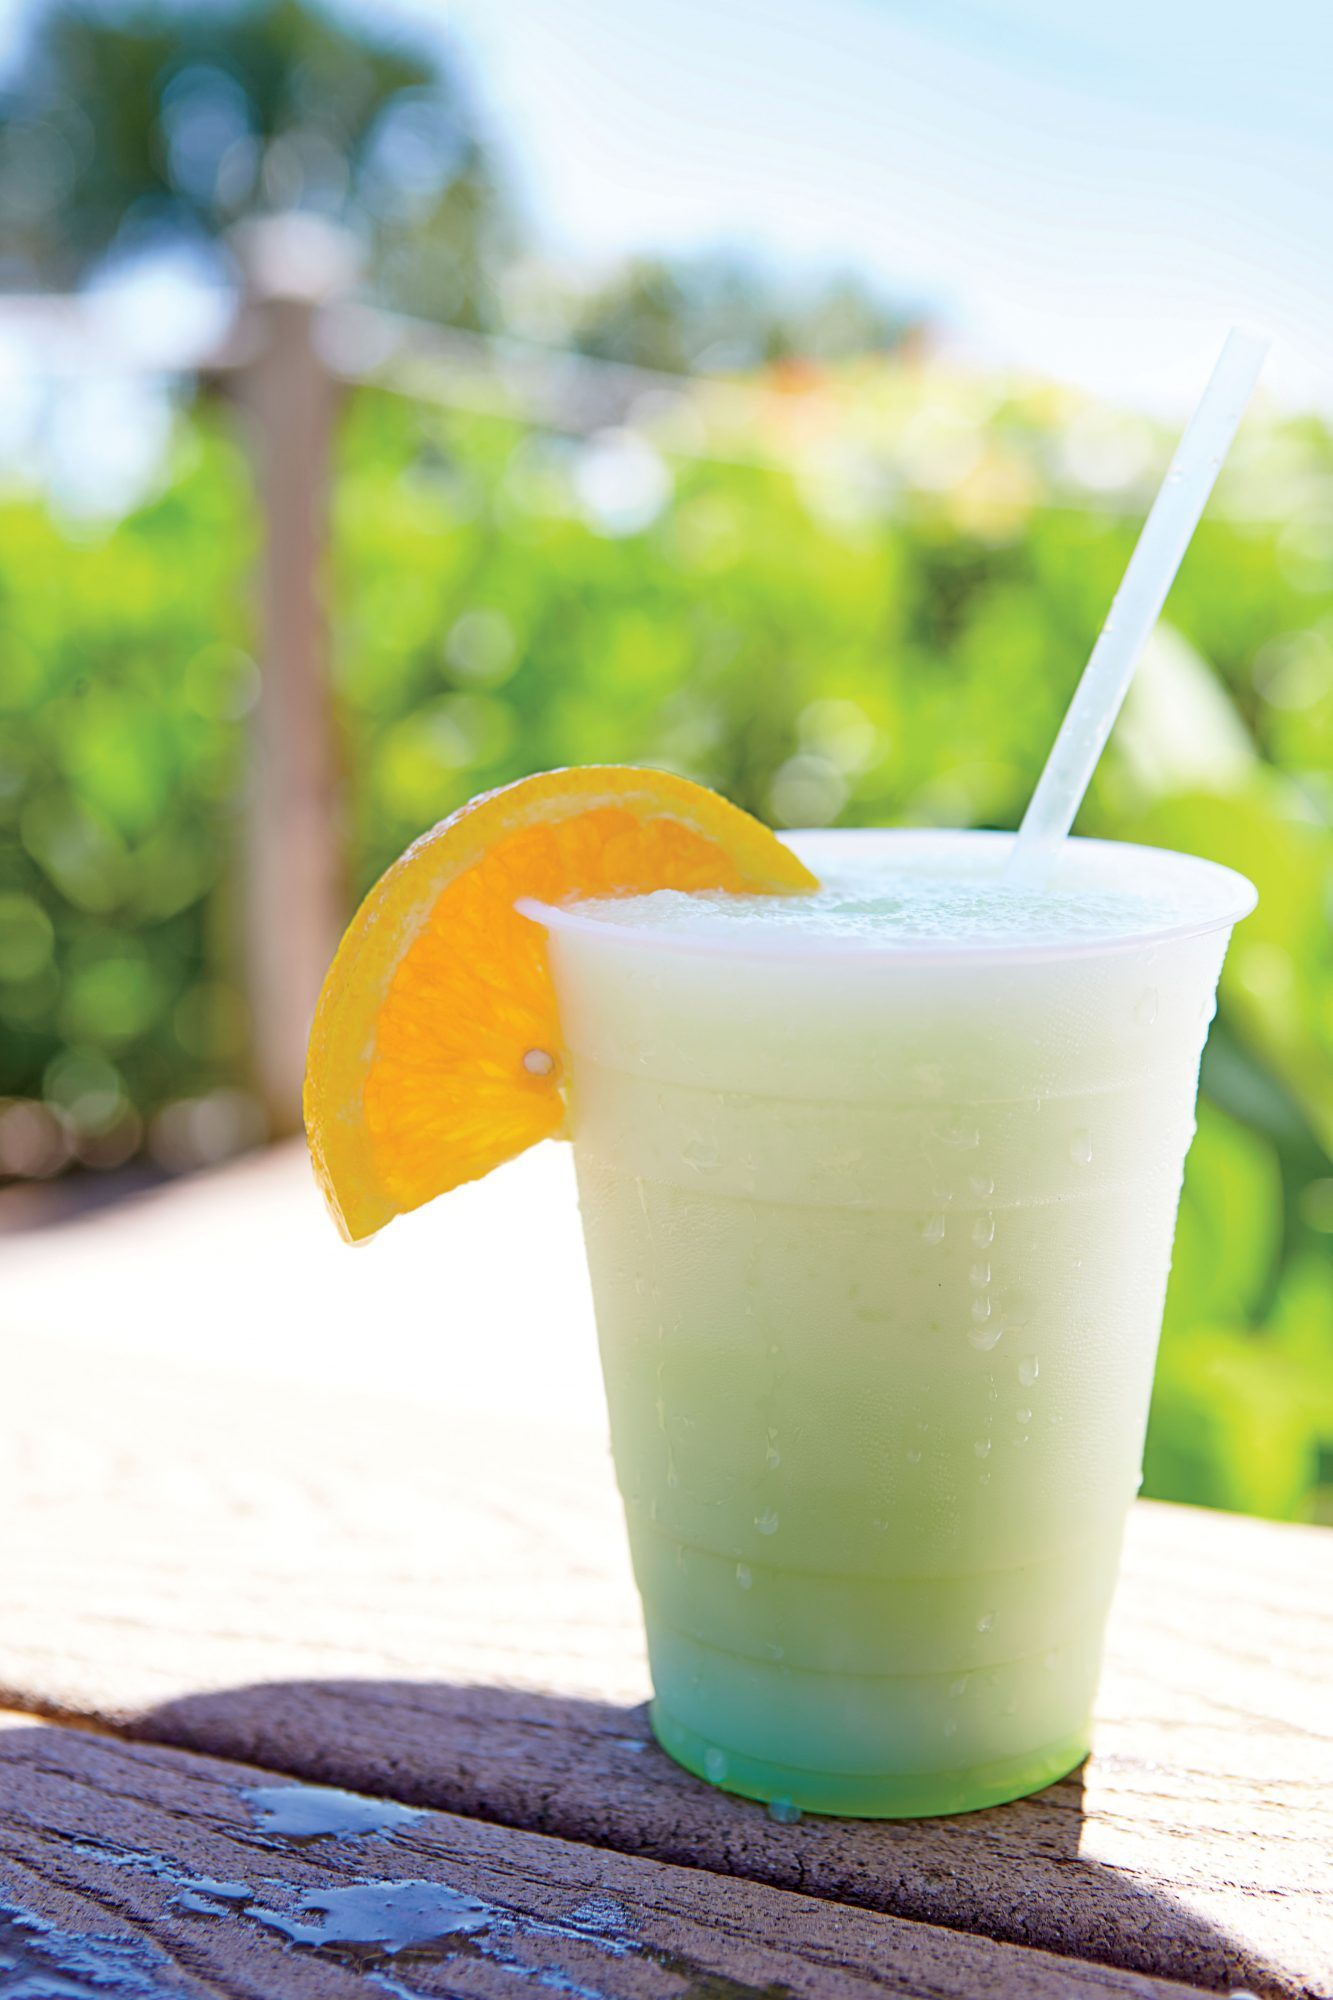 Coconuts Poolside Bar and Grill at Casa Ybel Resort is the place to go for relaxing after a day of fun in the sun. Order the Frozen Alligator—a frosty cocktail made from coconut rum, Midori melon liqueur, piña colada mix, and vanilla ice cream.